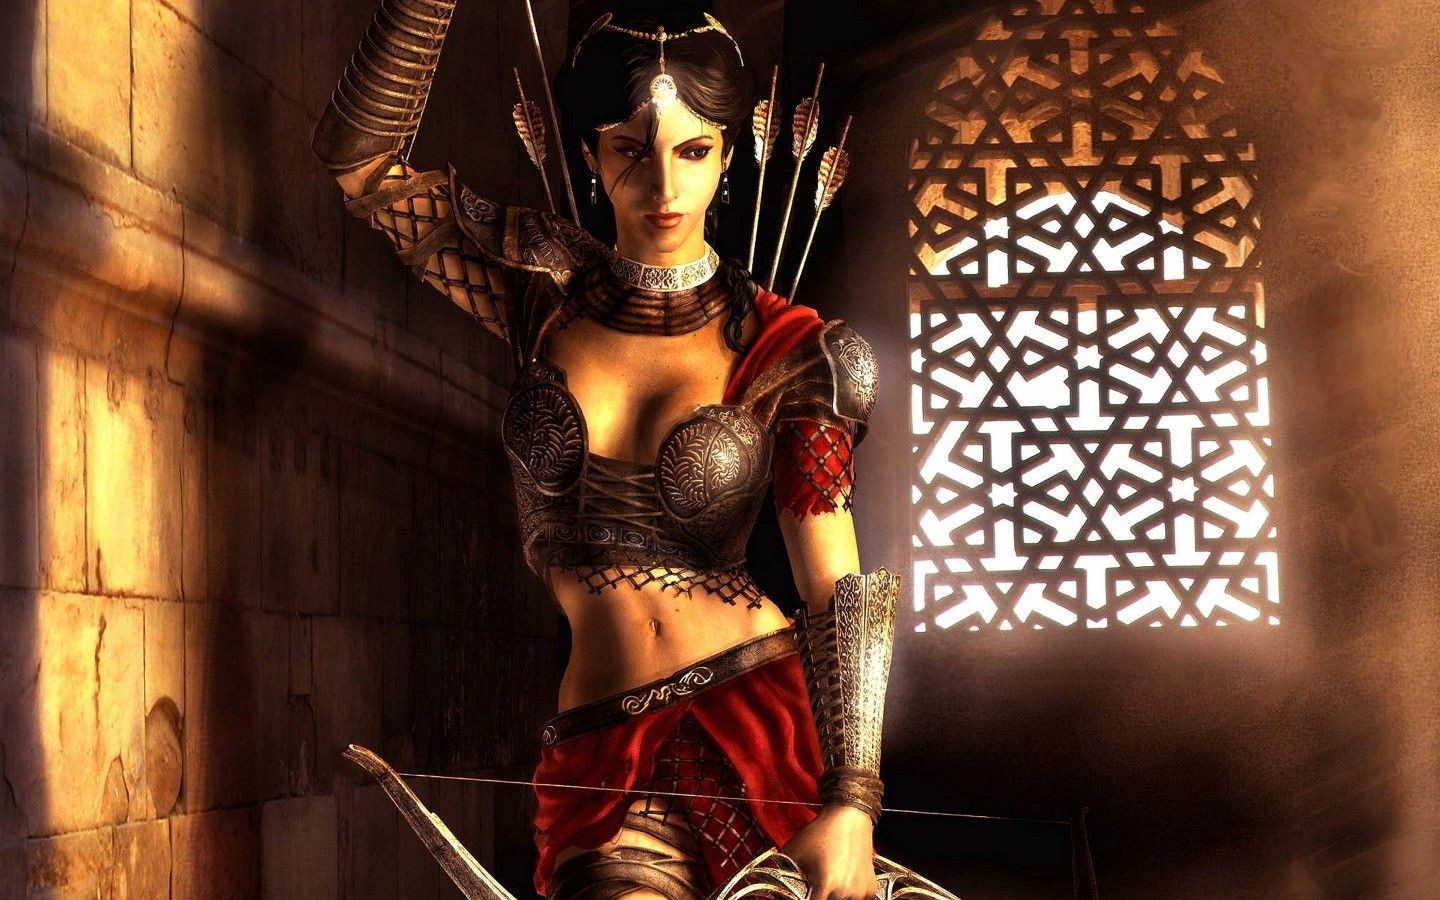 Prince of persia hd xxx porn wallpaper naked films